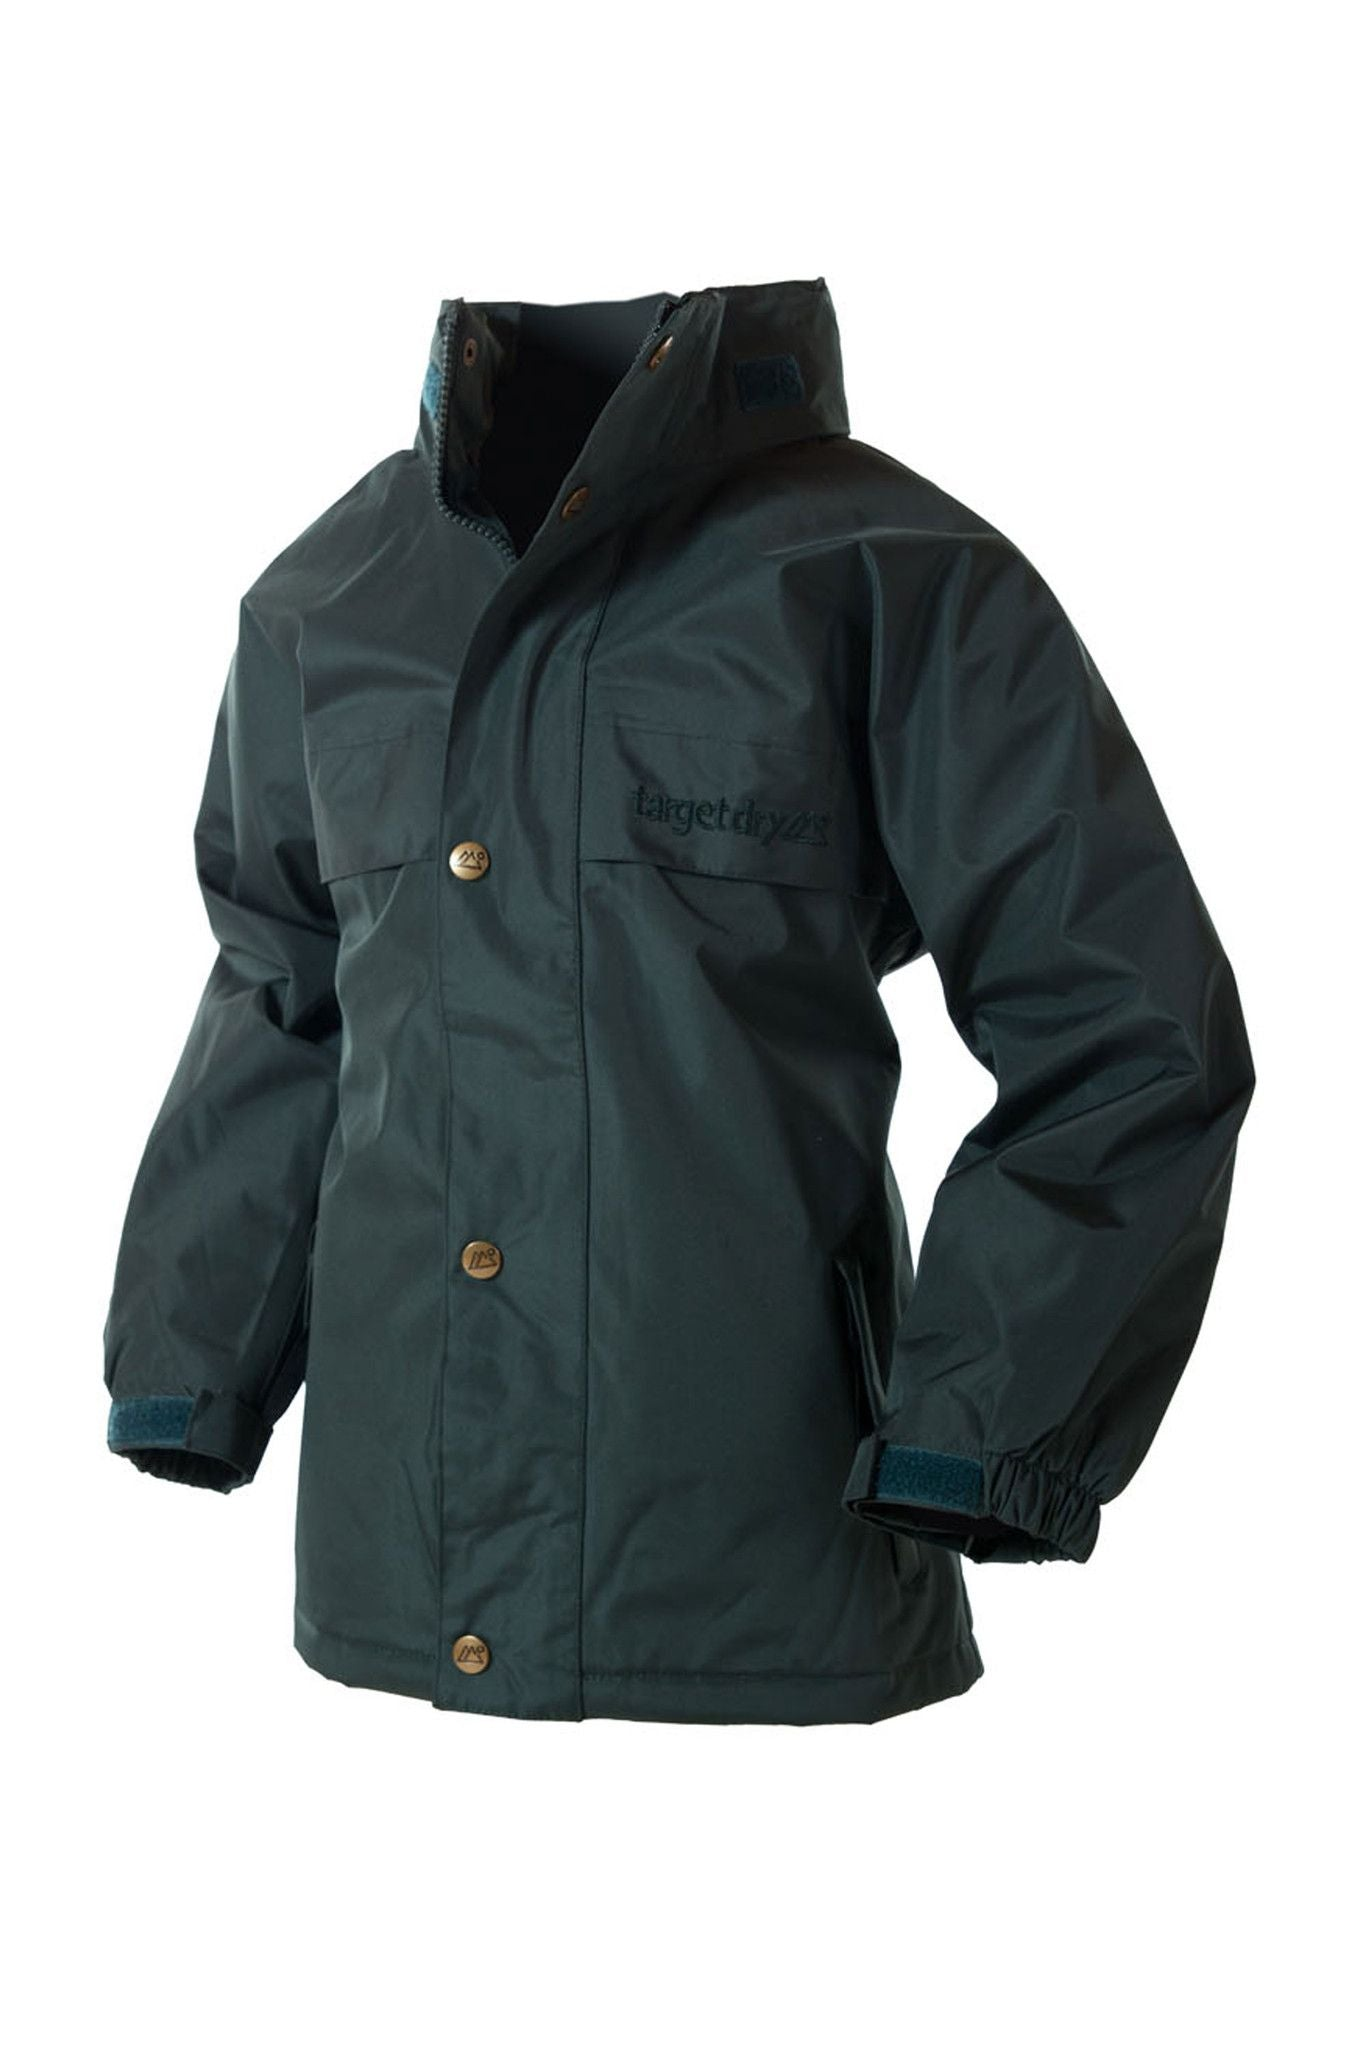 9a4326c57 Kids Vancouver Waterproof Coat — Perfect for School - Target Dry